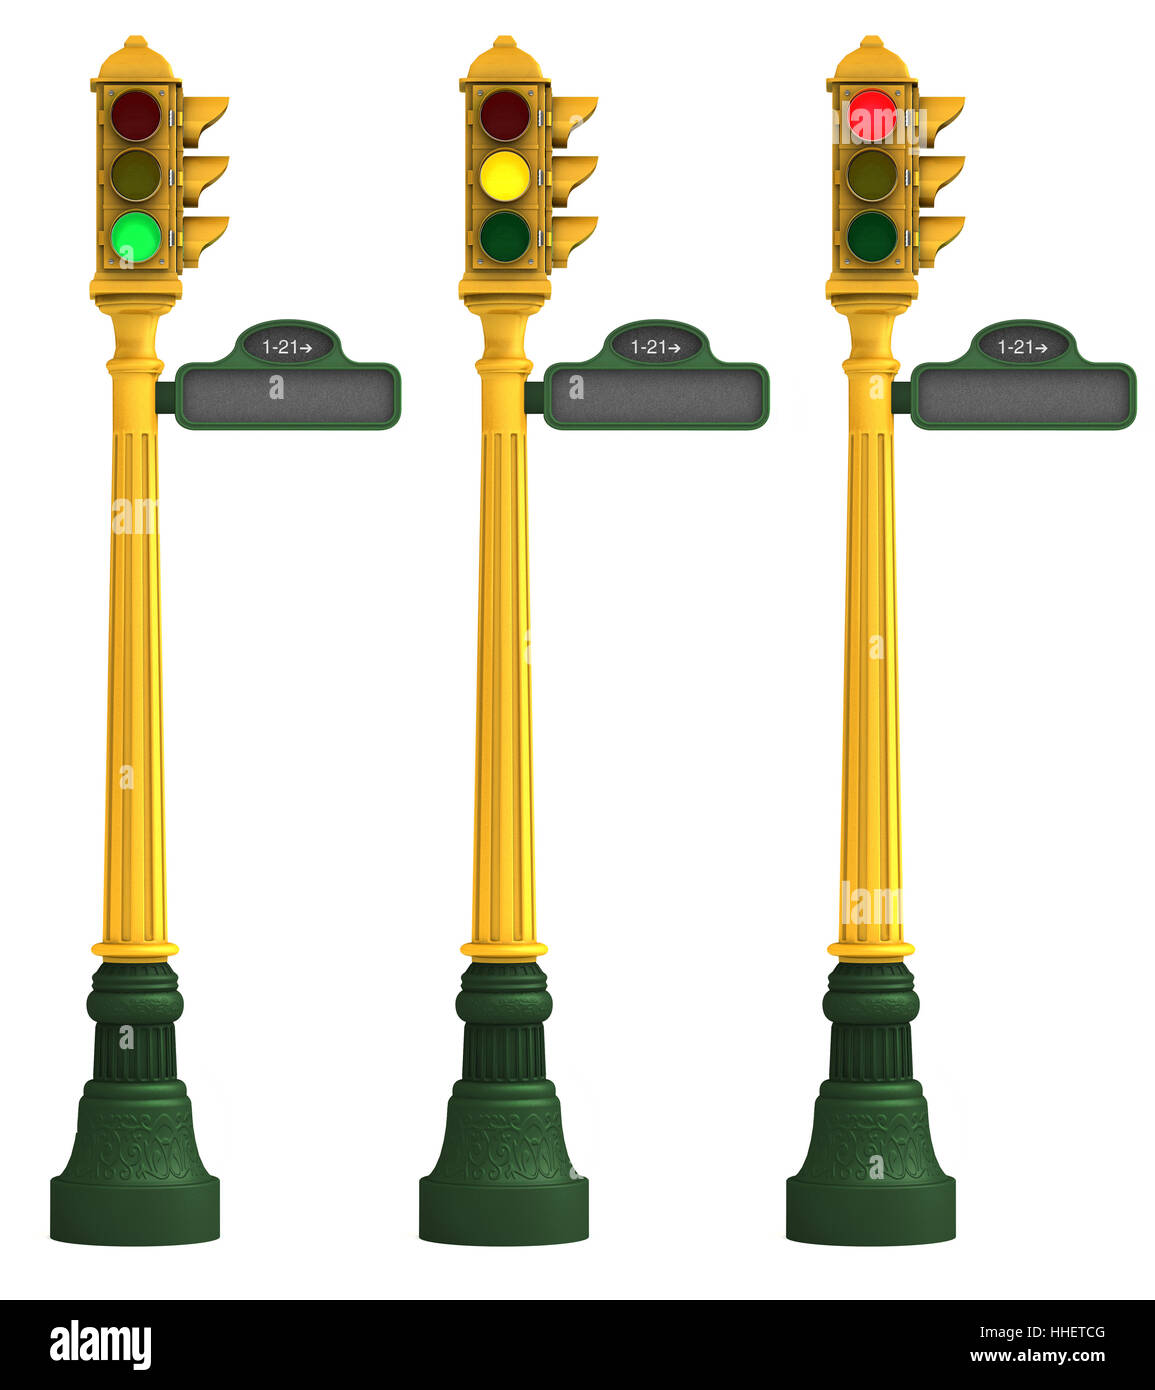 Sign, Signal, Hanging Lamp, Traffic Light, Set Of Lights, Retro Stock  Photo: 131248224   Alamy